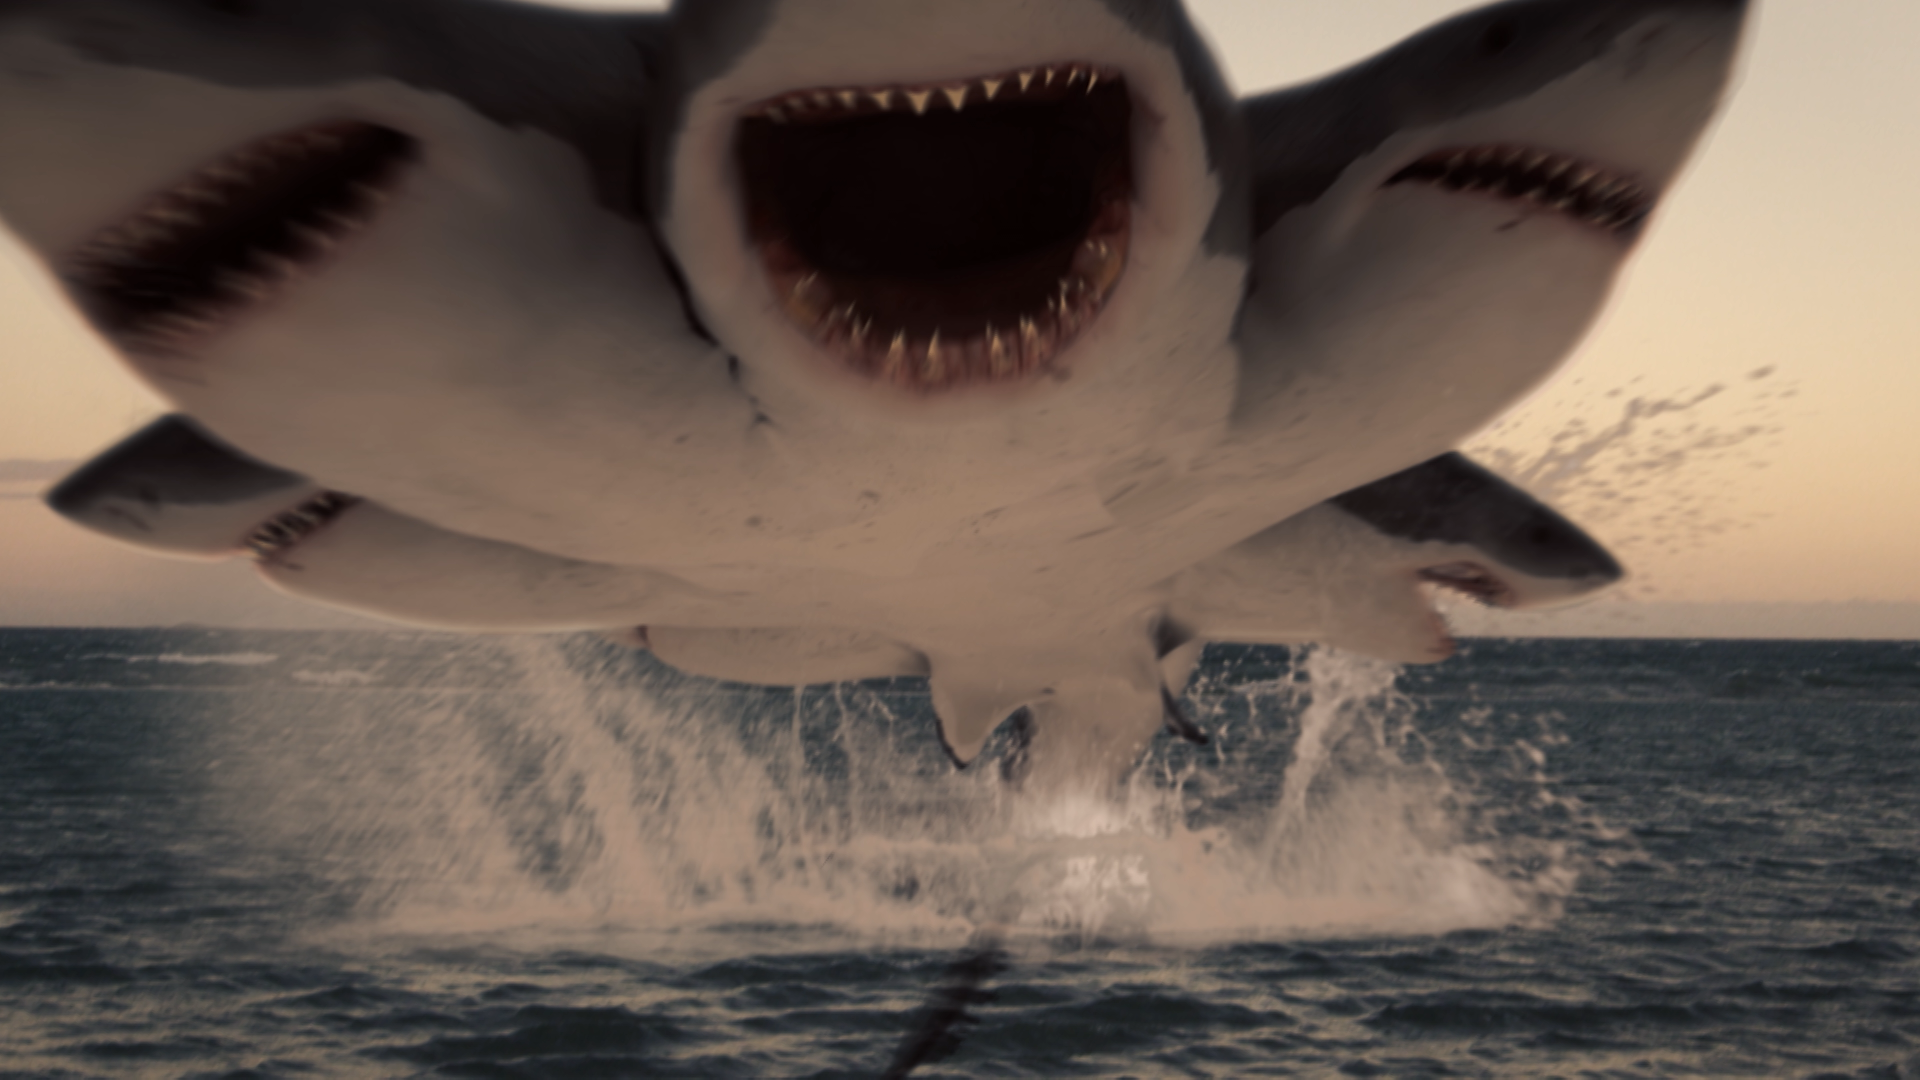 Exclusive Image Gallery Previews The Wacky 6 Headed Shark Coming To Syfy This Weekend